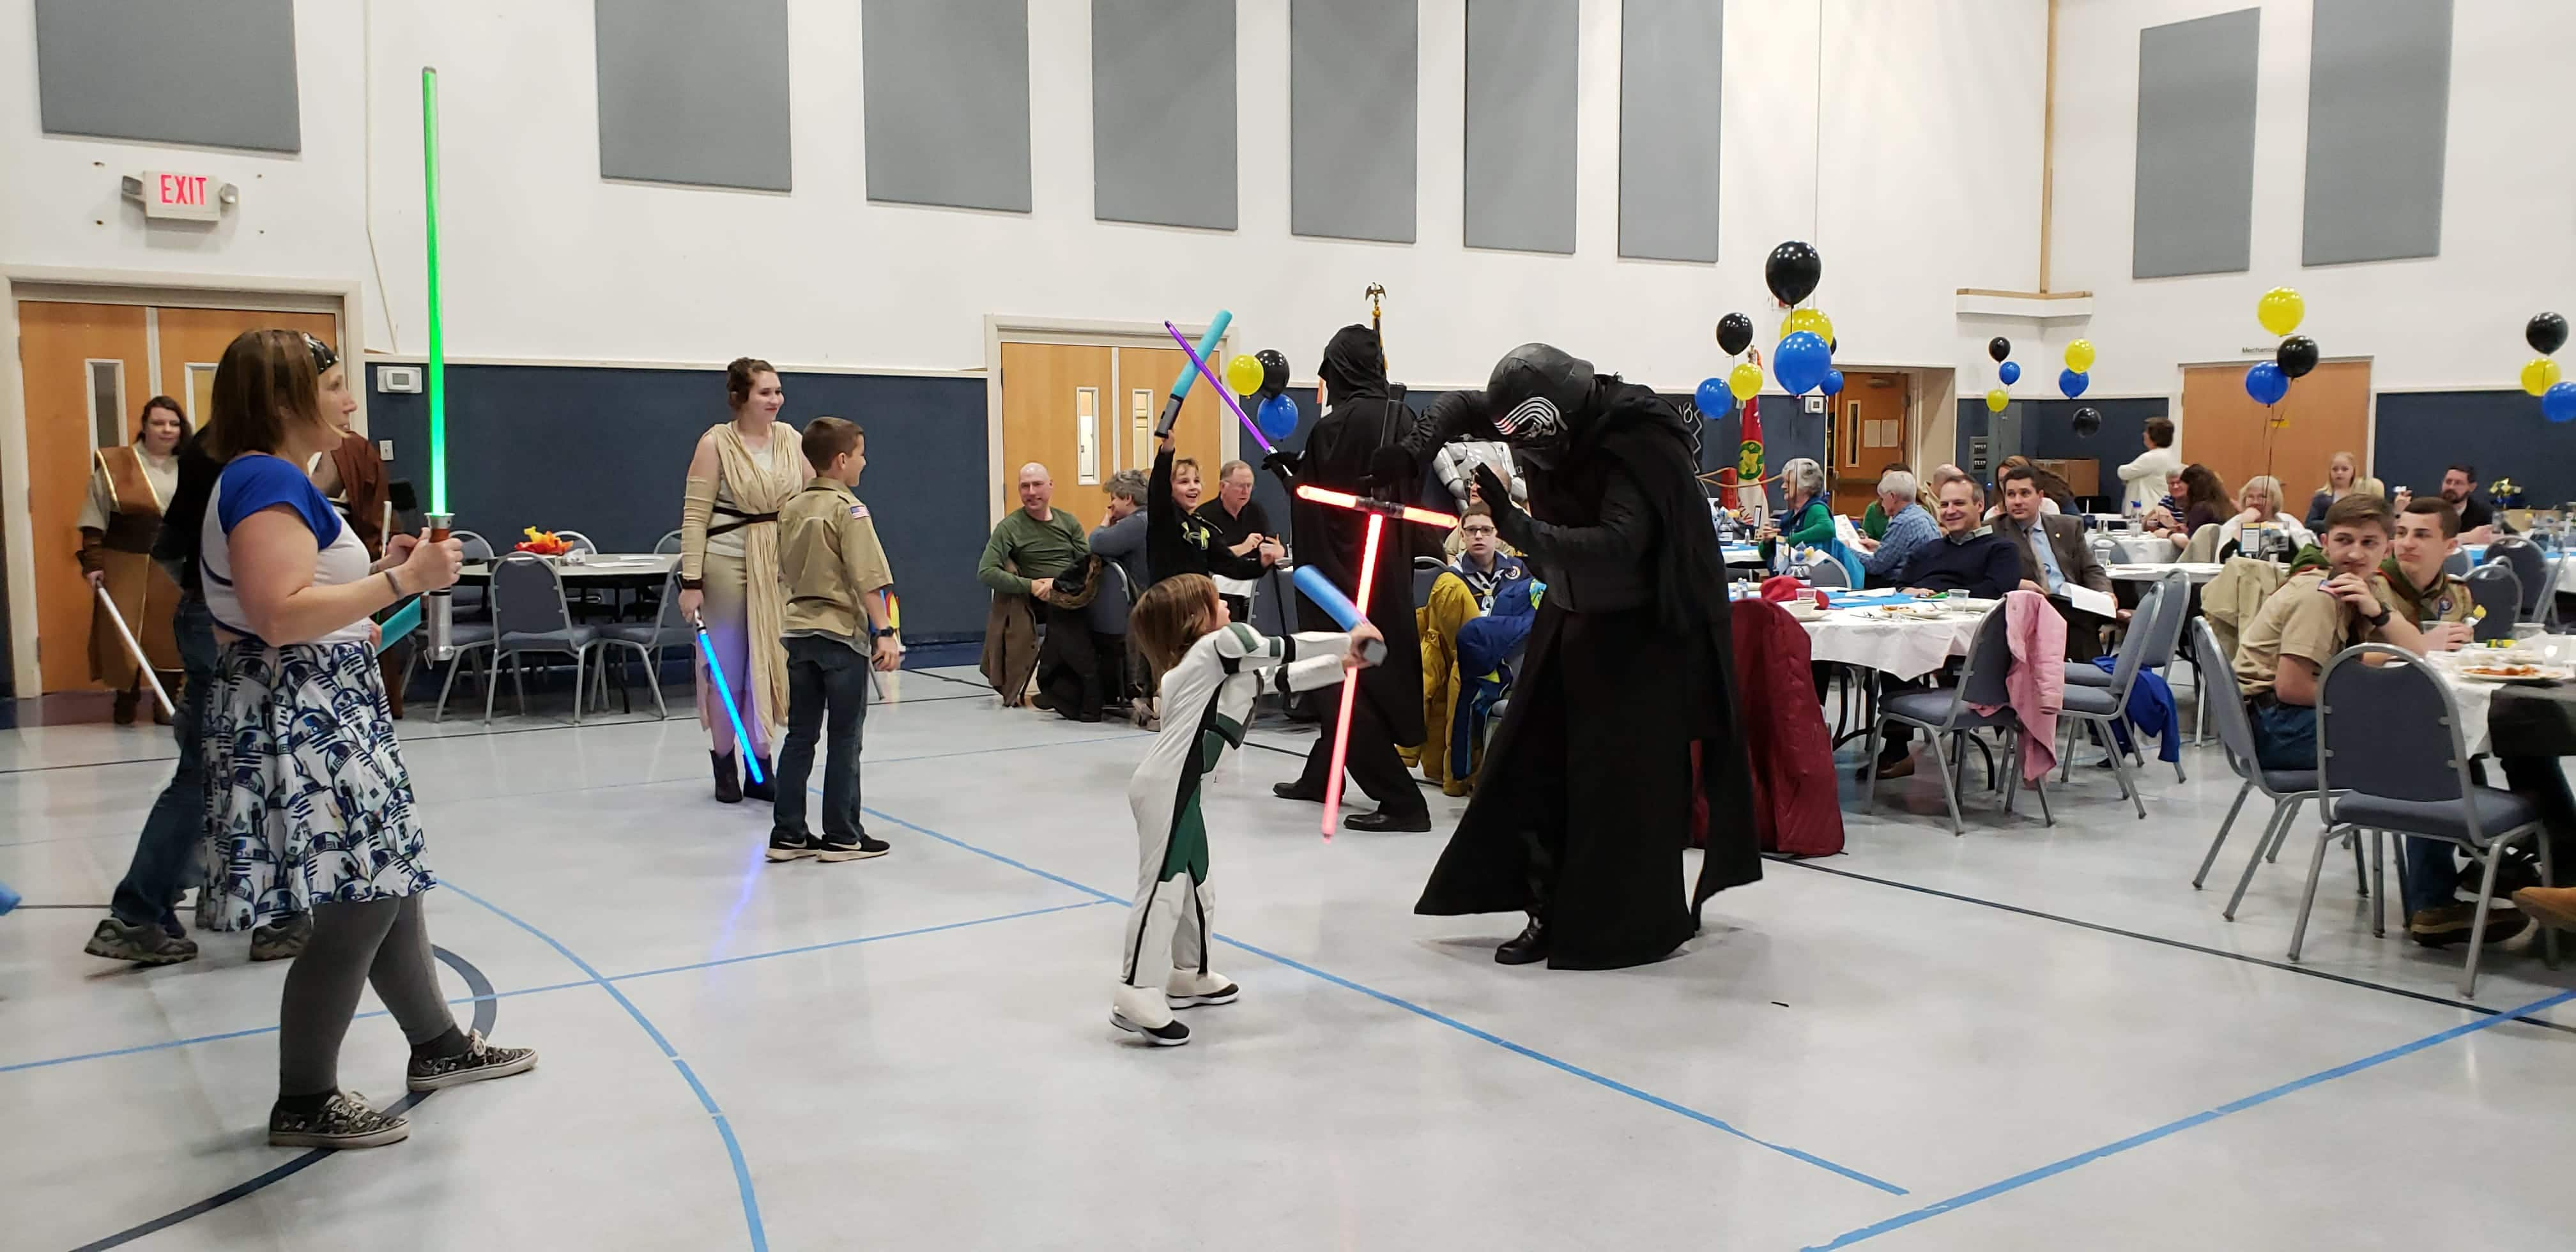 Copy of Kylo scouts night